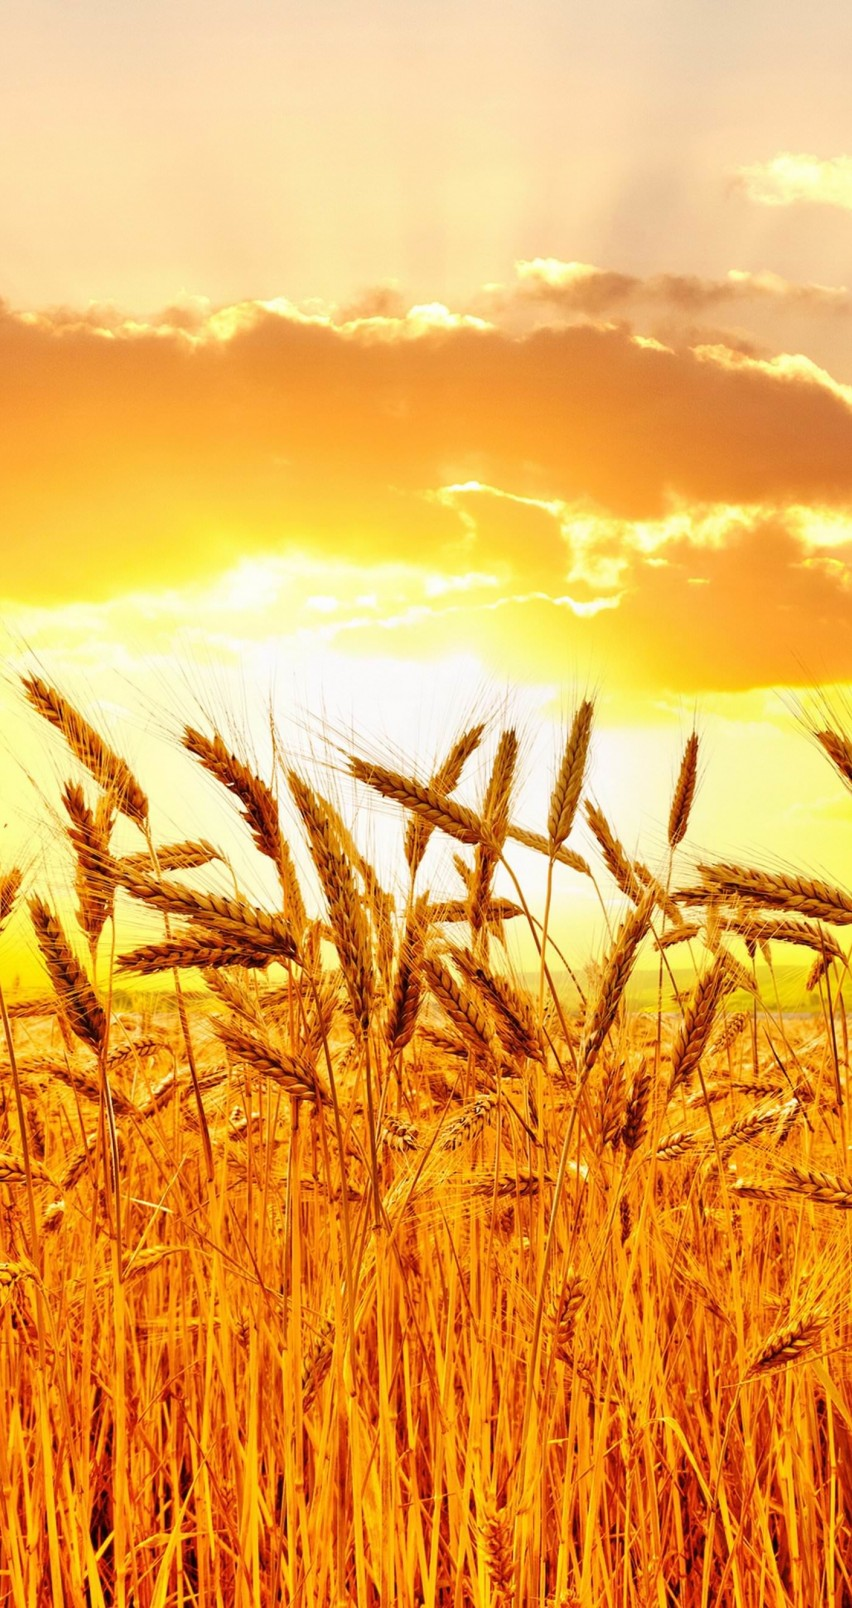 Golden Wheat Field At Sunset Wallpaper for Apple iPhone 6 / 6s